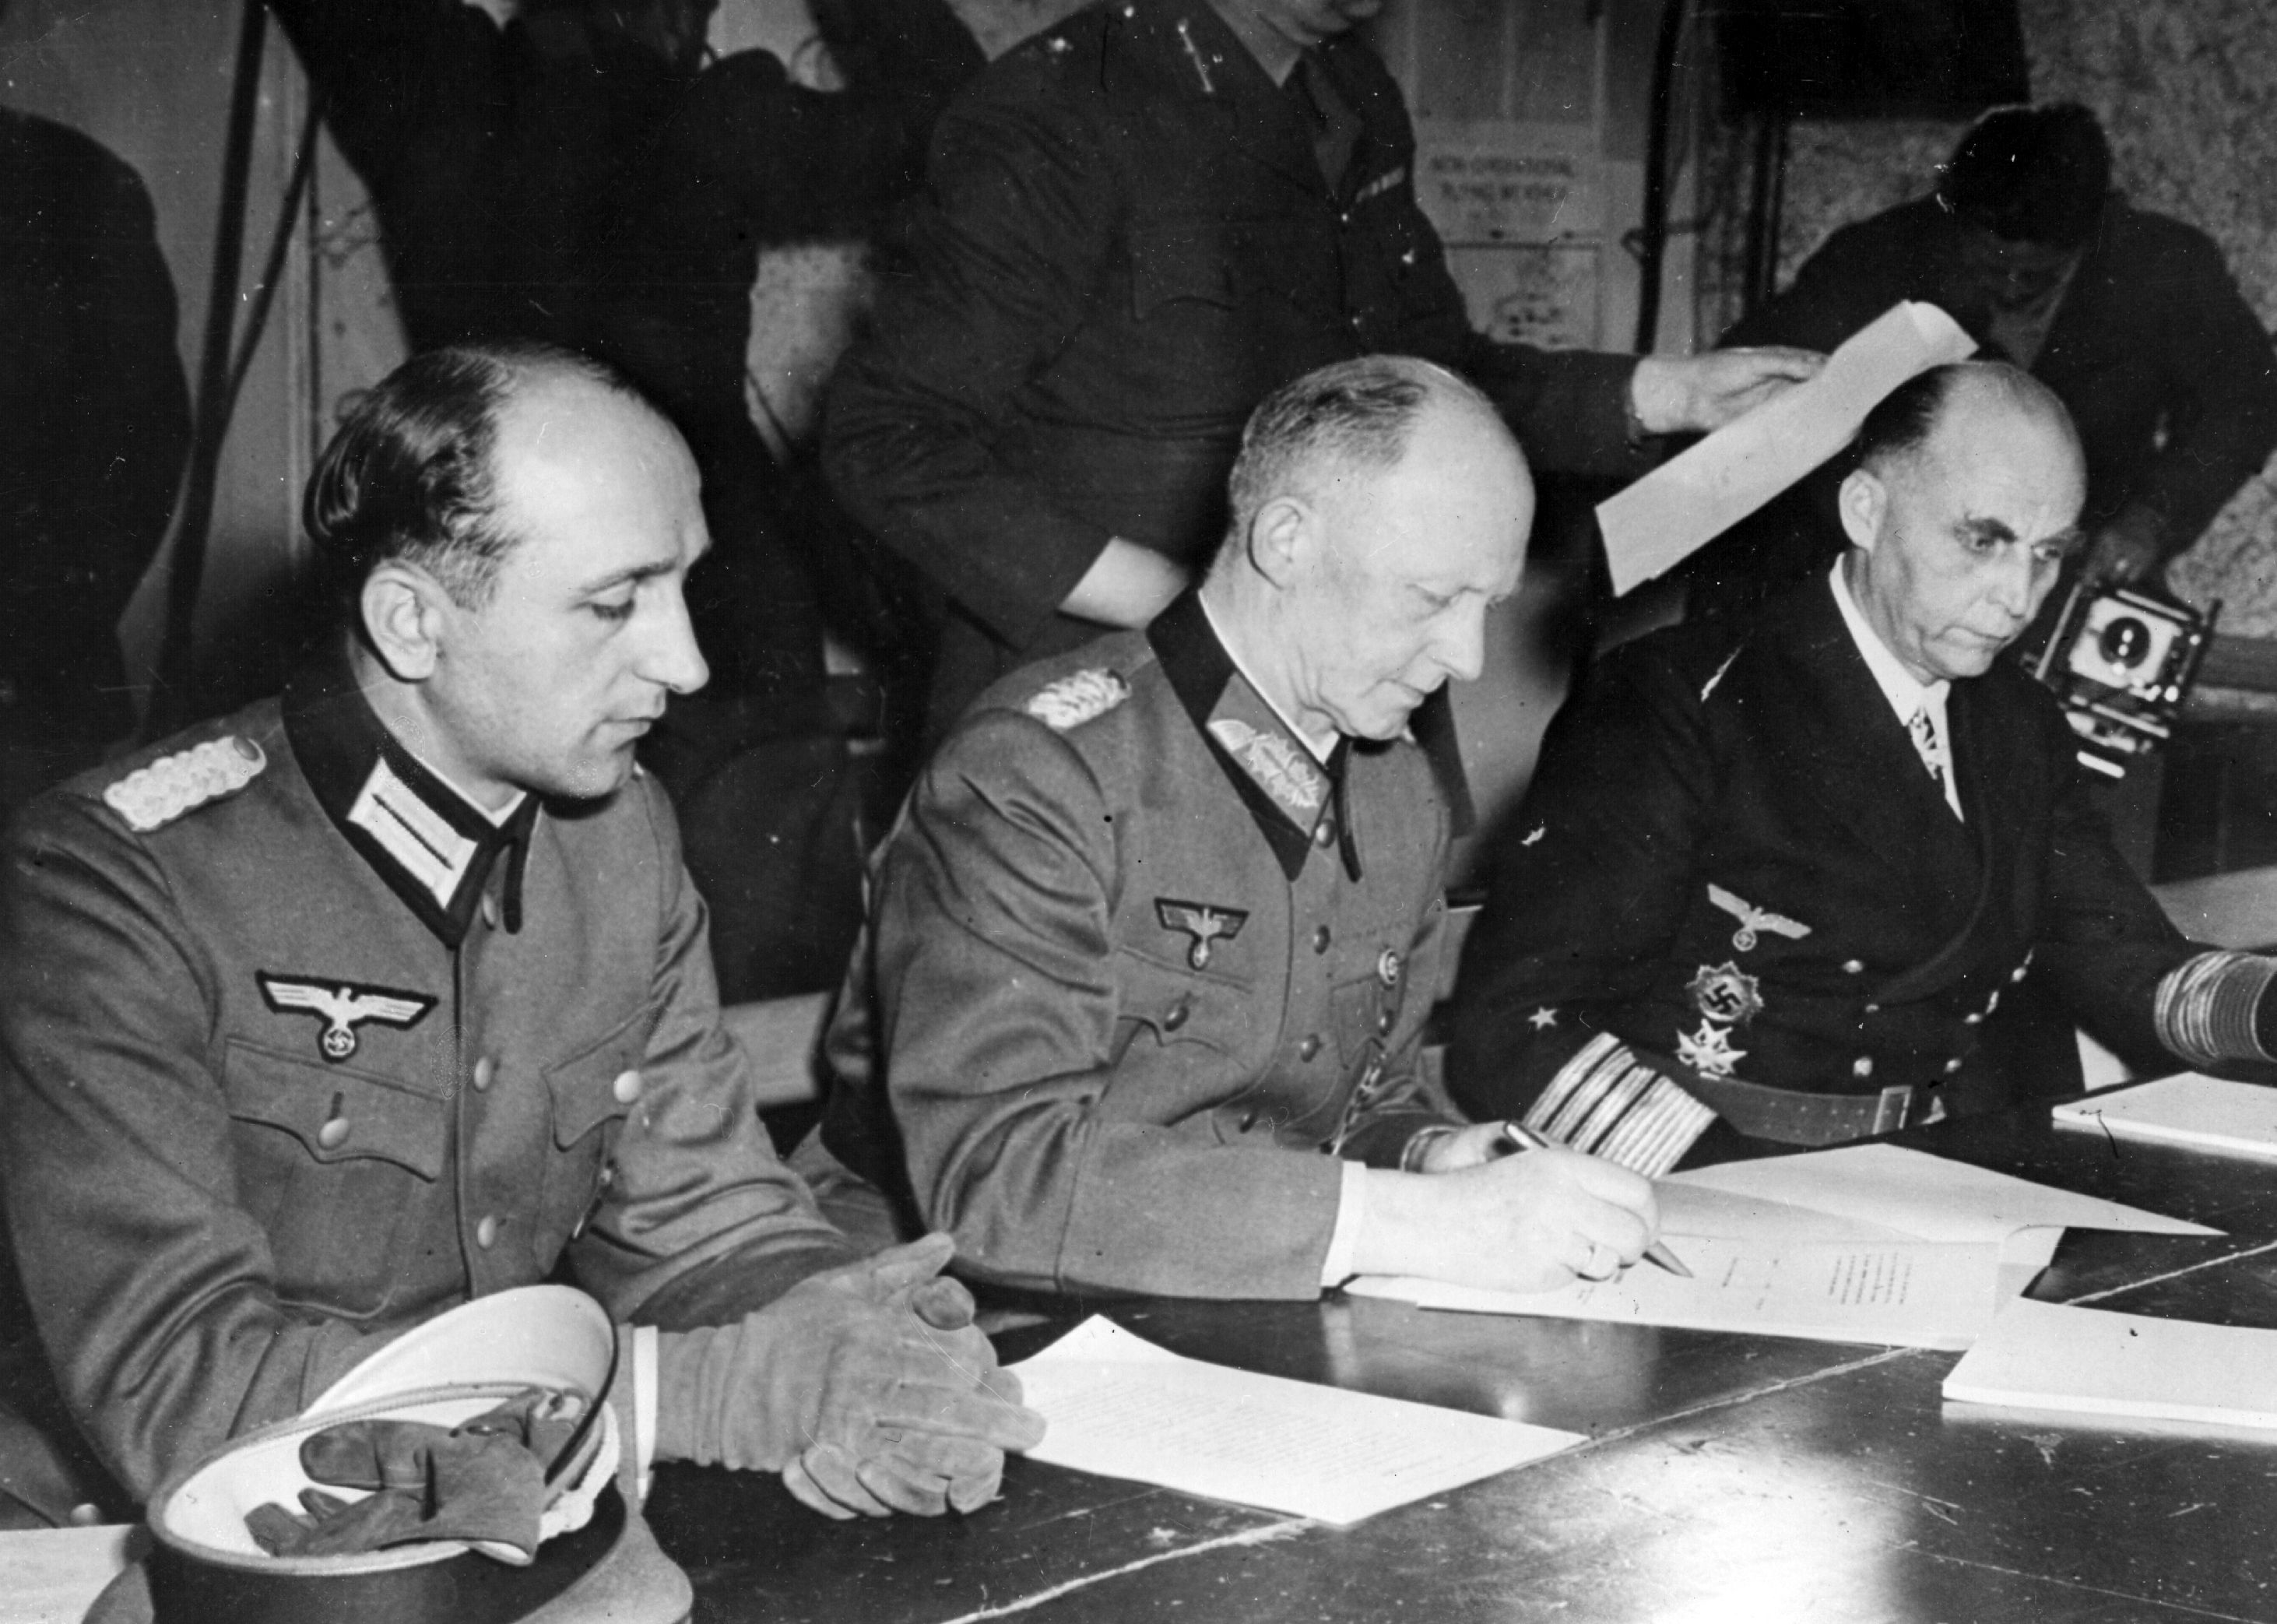 7th May 1945: German soldier and Chief of the Operations Staff Alfred Jodl (1890 - 1946) flanked by his aide on the left and Grand Admiral Hans Georg von Friedeburg on the right, signs the unconditional surrender document imposed by the Allies at General Eisenhower's HQ in Reims. (Photo by Hulton Archive/Getty Images)